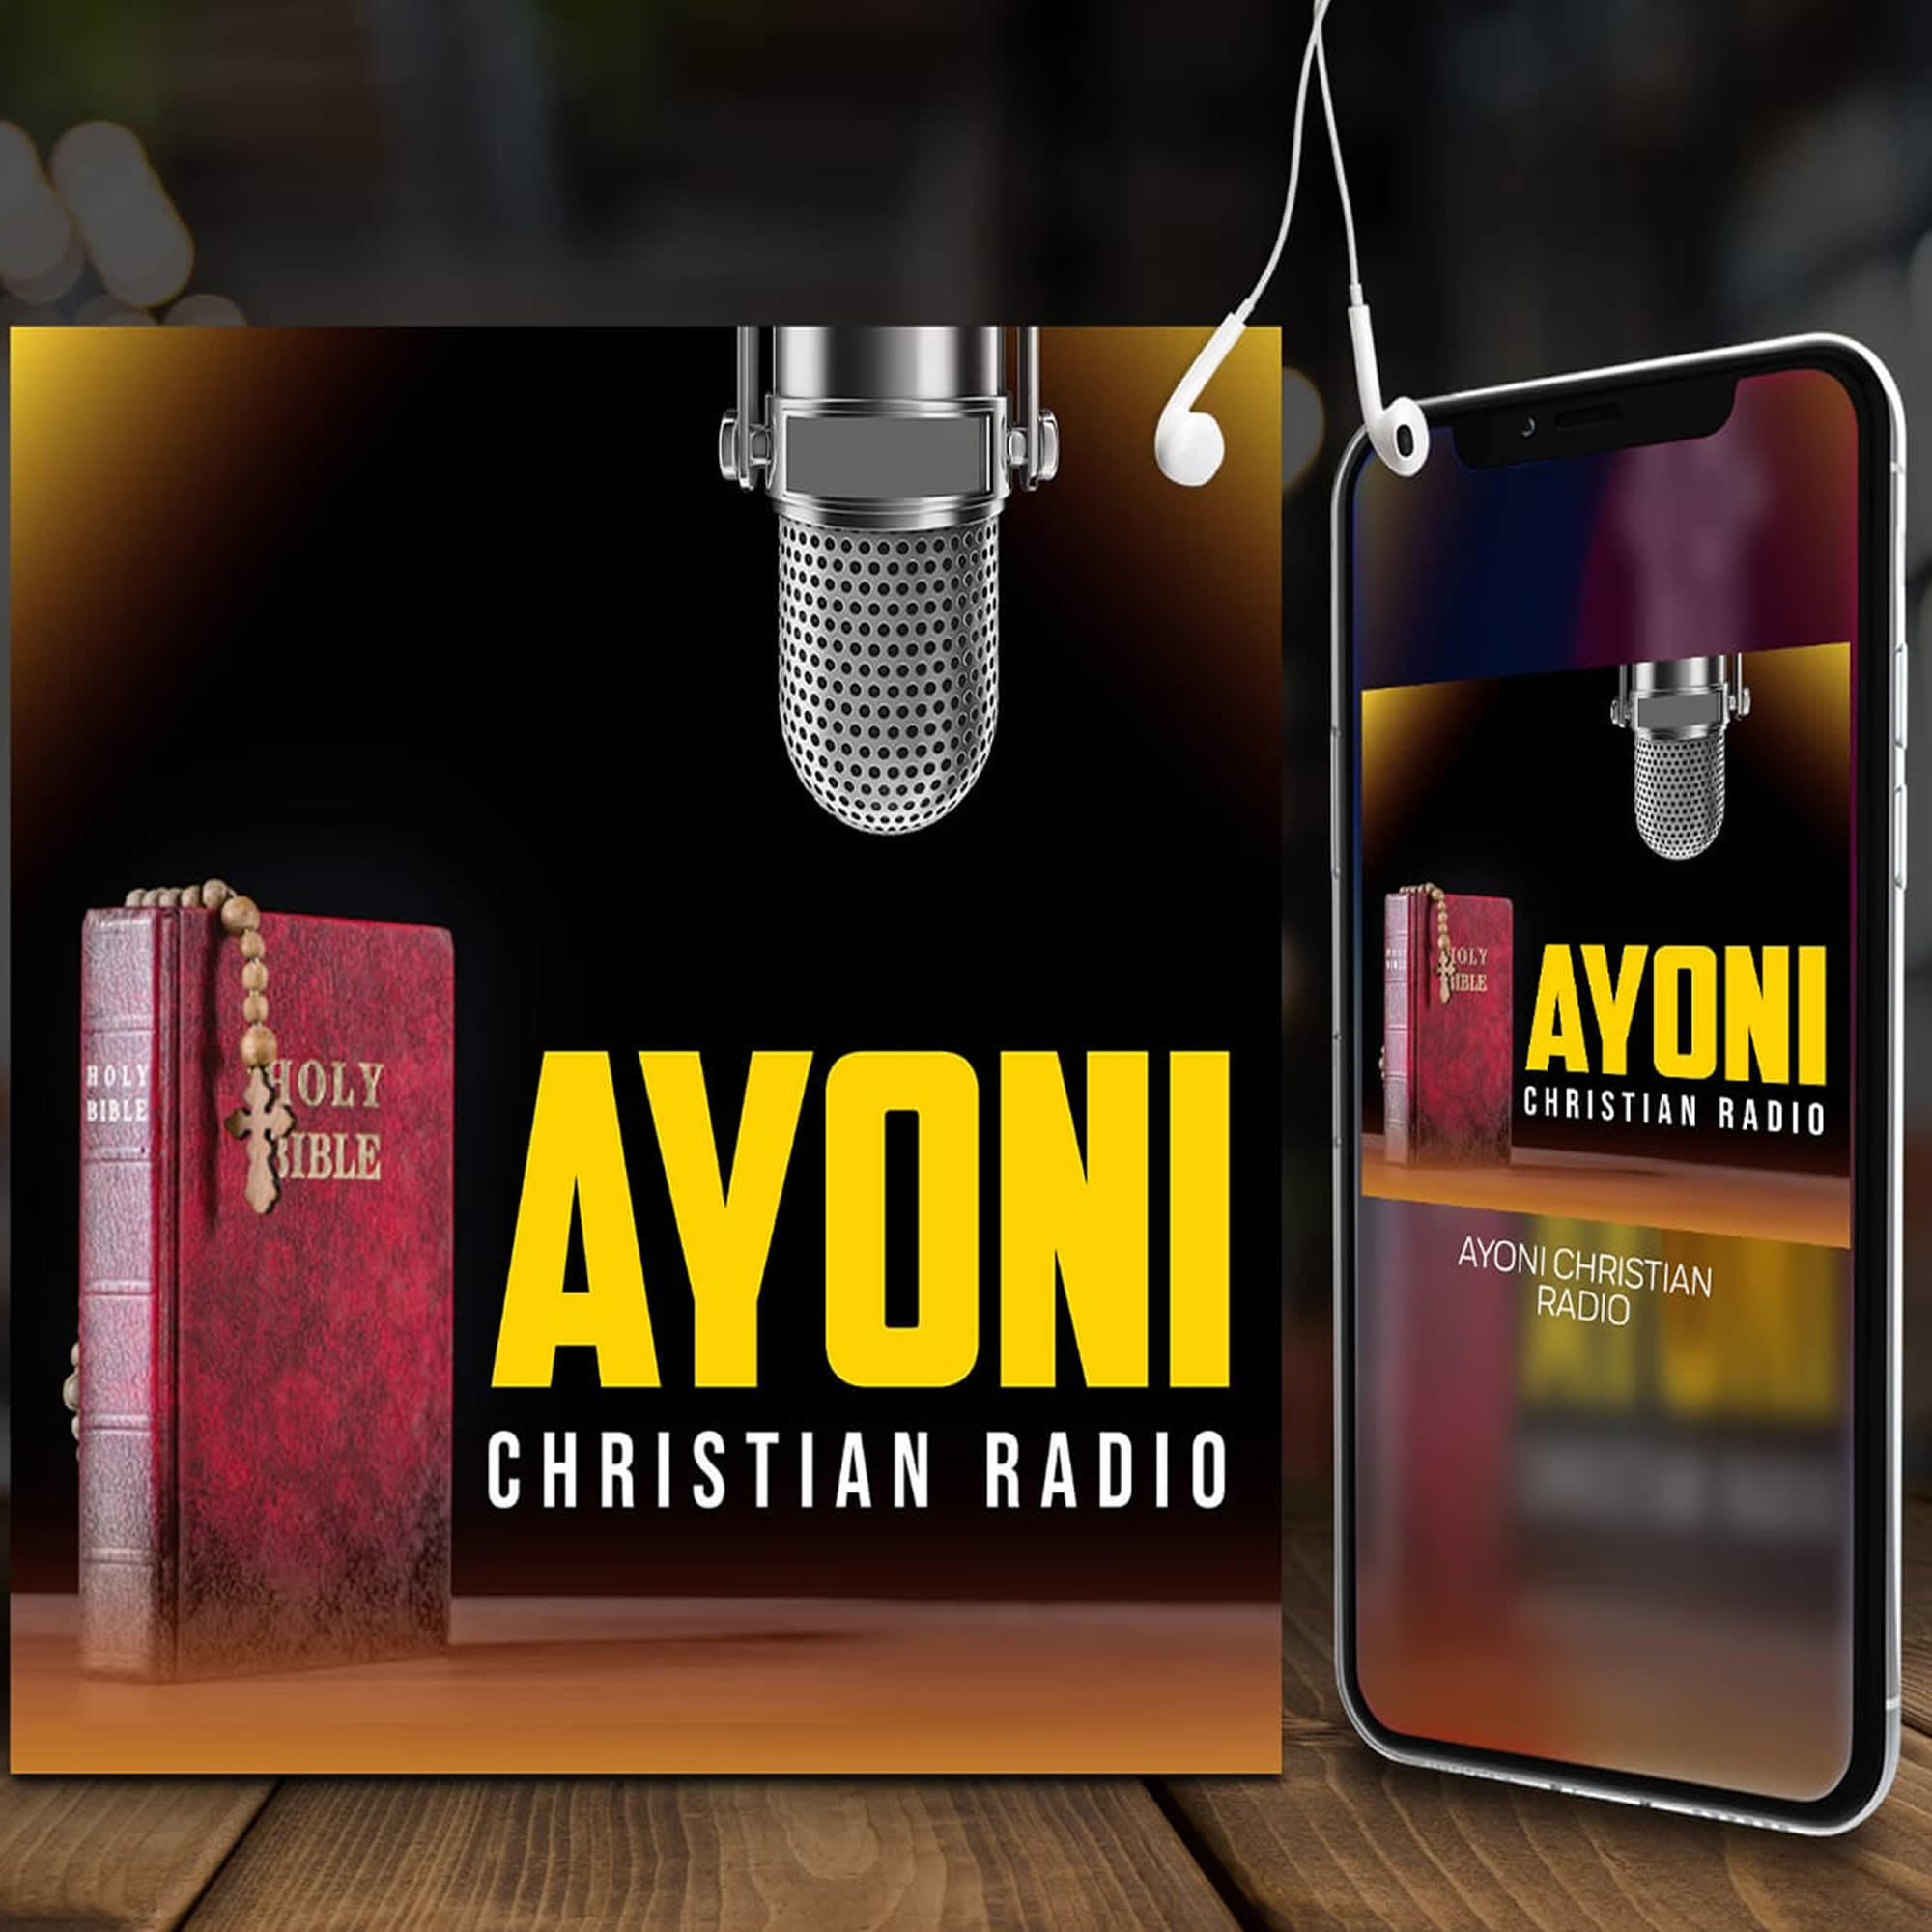 Ayoni Christian Radio